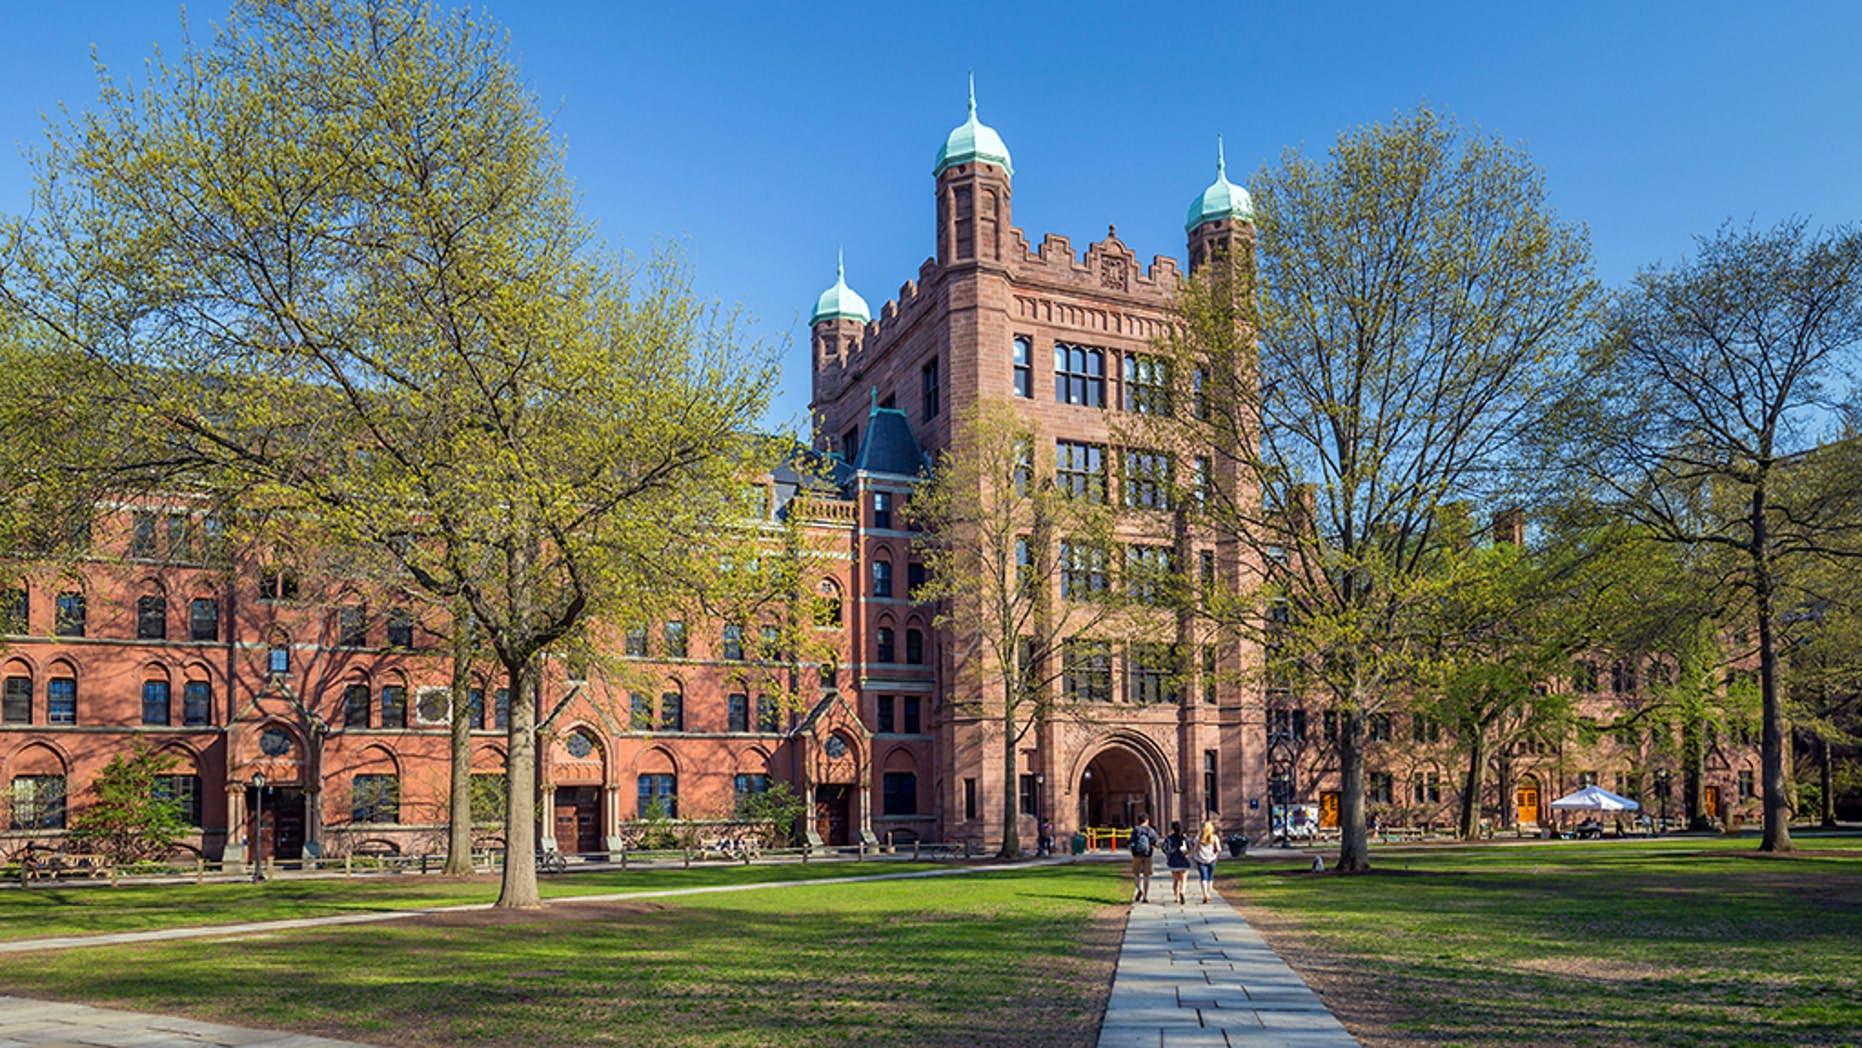 Three female students filed a class-action lawsuit against Yale University and nine all-male fraternities on Tuesday in an attempt to stop the social organizations from admitting people based on their gender.